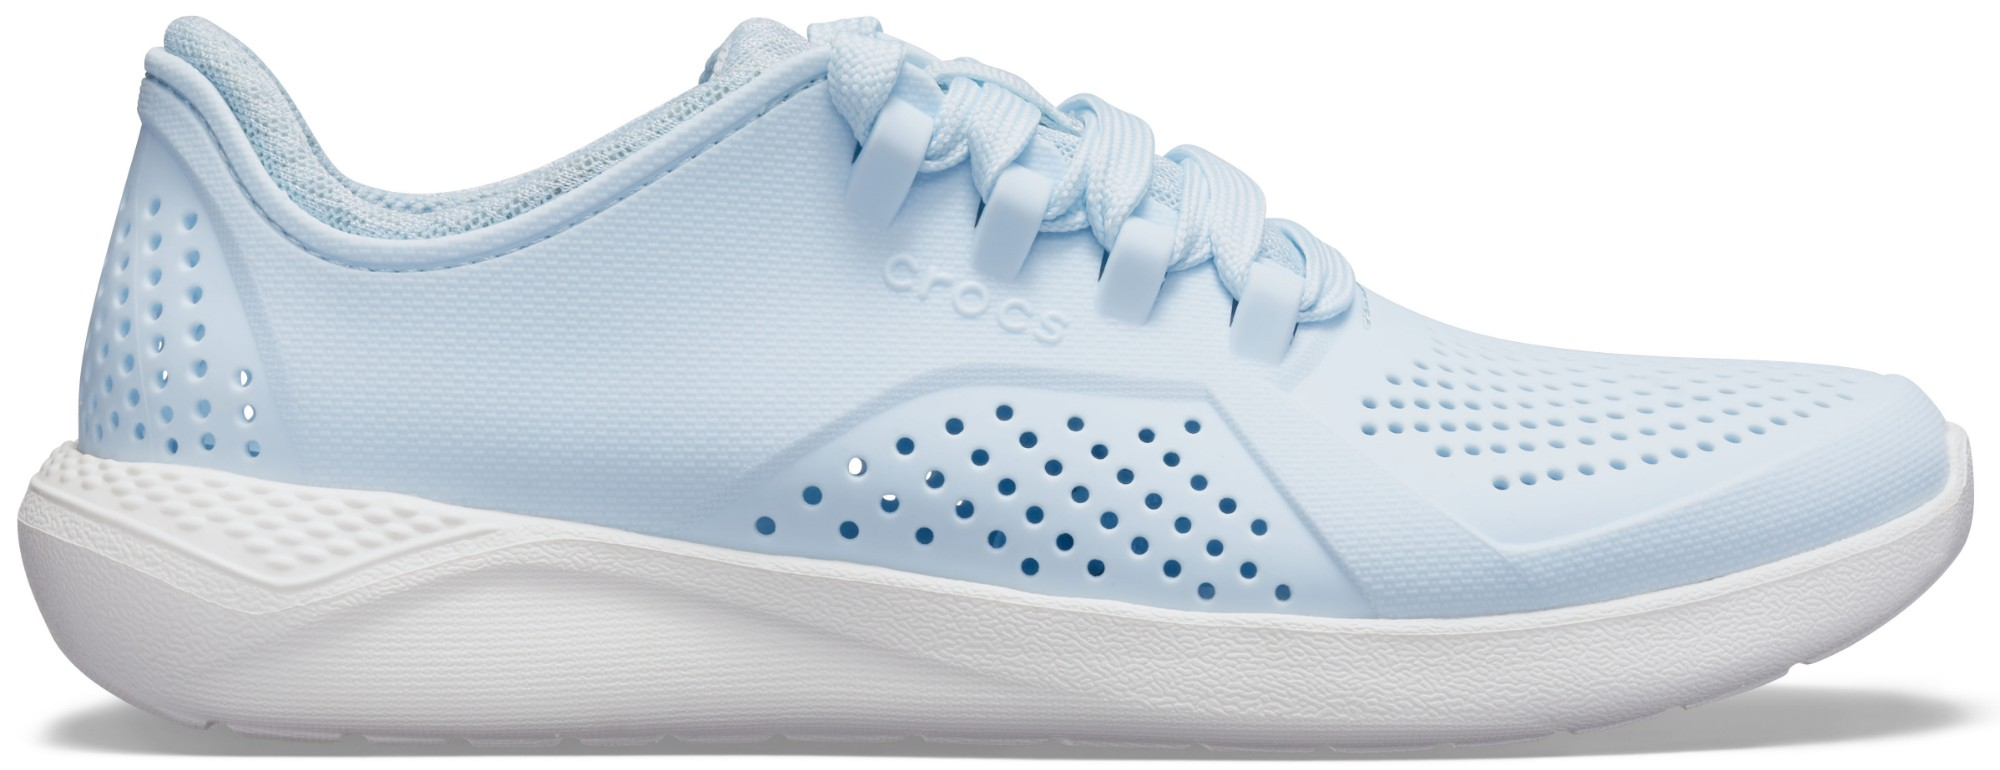 Crocs™ Women's LiteRide Pacer Mineral Blue/White 39,5